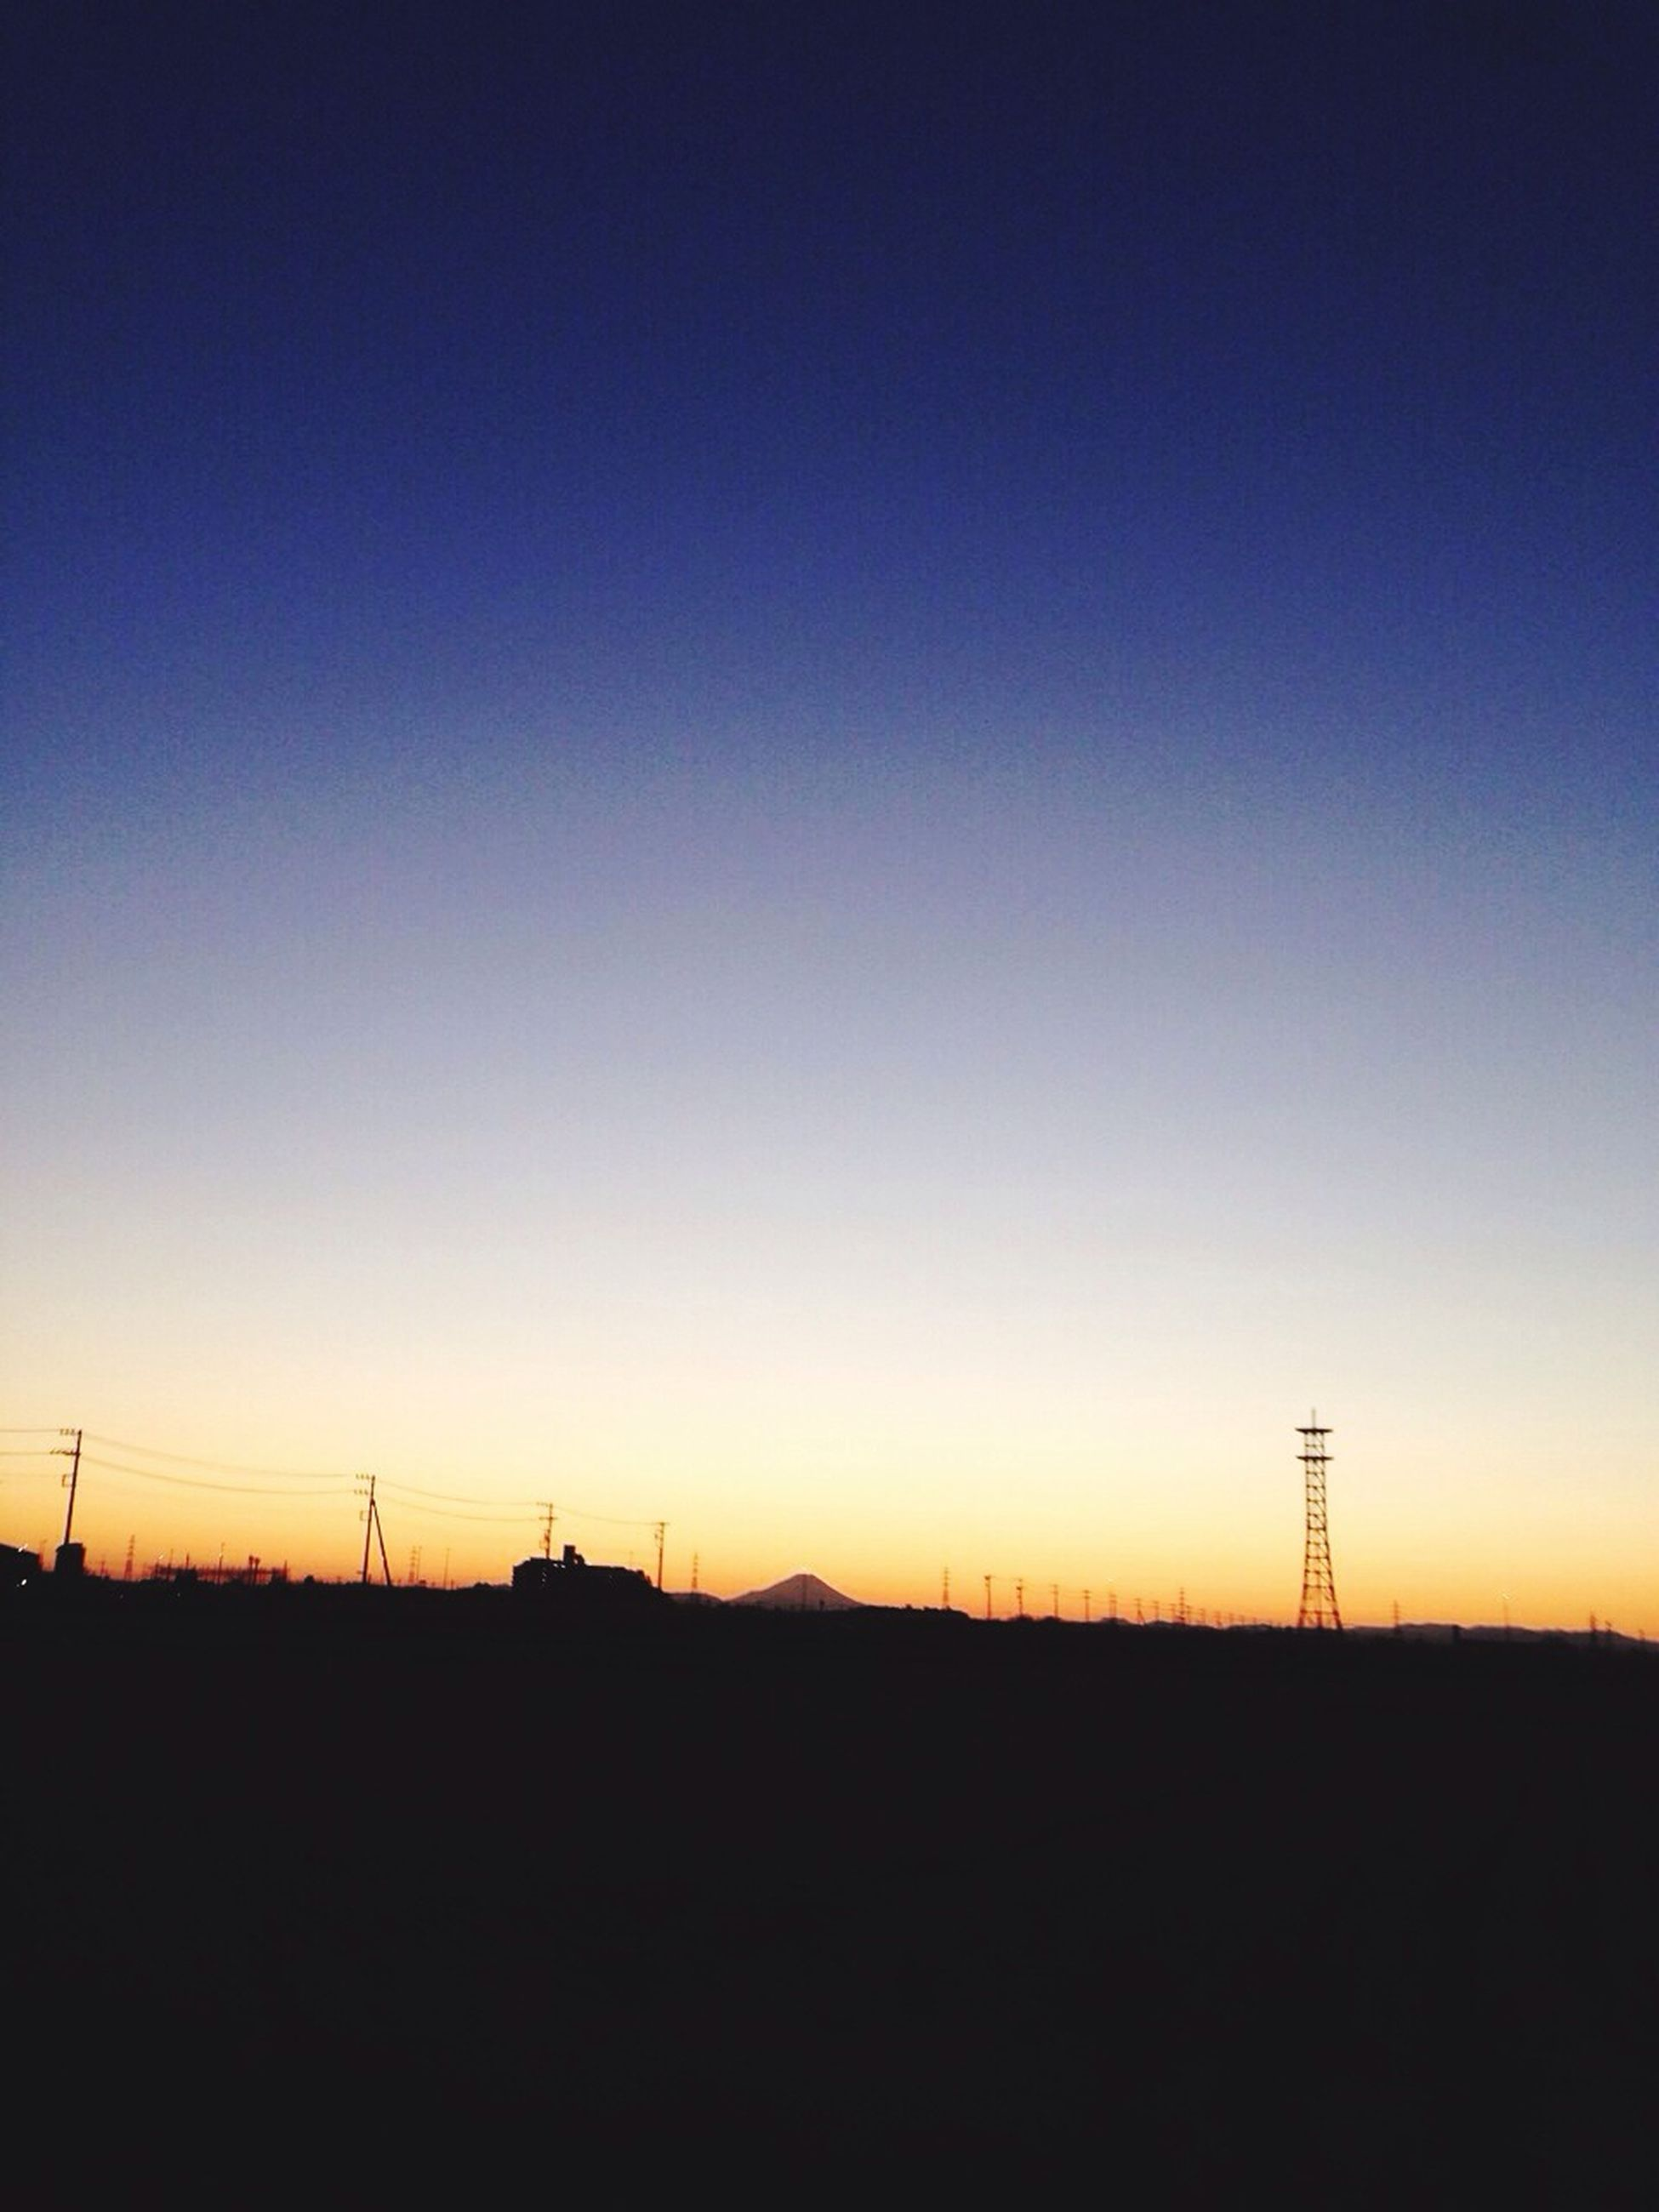 silhouette, copy space, sunset, clear sky, landscape, fuel and power generation, tranquil scene, tranquility, electricity pylon, technology, field, wind power, scenics, wind turbine, nature, horizon over land, beauty in nature, electricity, alternative energy, environmental conservation